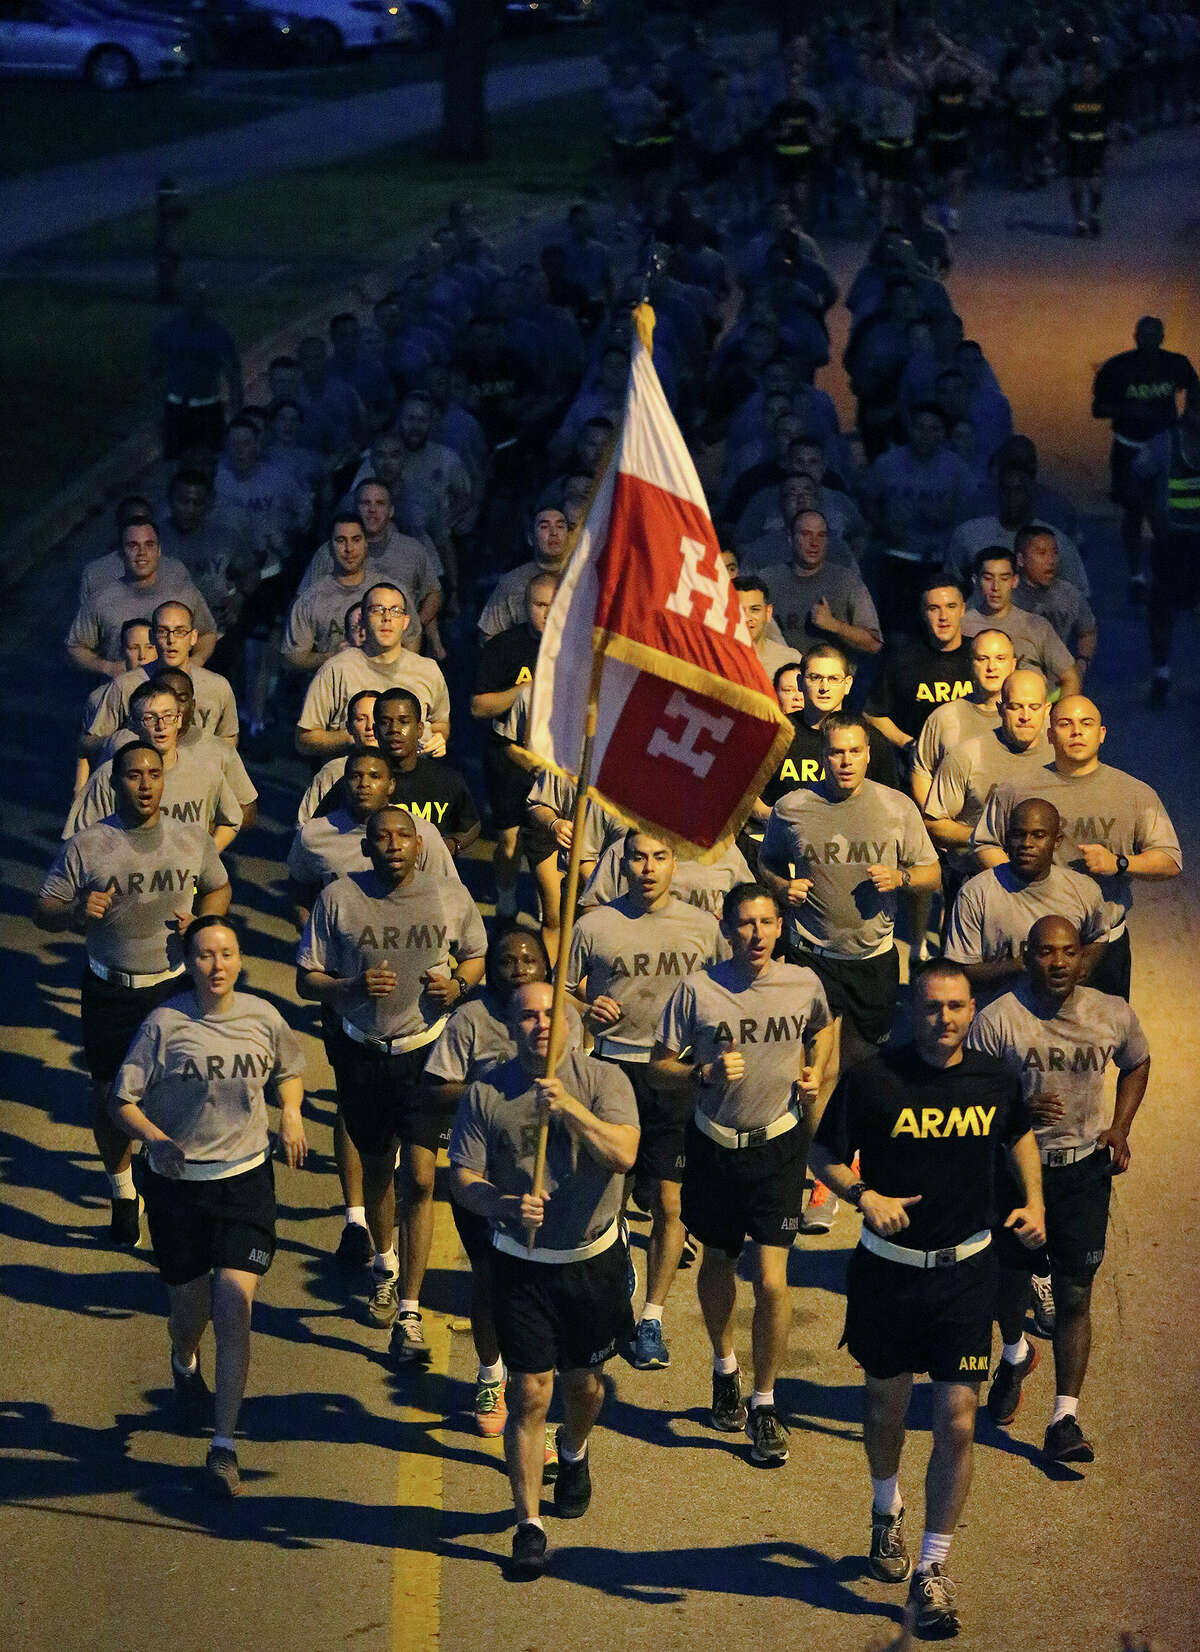 Army soldiers run at 5:30 a.m. Wednesday June 3, 2015 at Joint Base San Antonio-Fort Sam Houston after the American flag was raised and a cannon was fired. More than 5,000 runners converged at the post to take part in a mass formation run on a 3.5 mile circuit to kick off celebrations for the U.S. Army's 240th birthday celebration. The run is the first of several events area Army units are planning to take part in for the celebration and other events will include a formal ball on June 13 as well as several cake cutting ceremonies at Ft. Sam Houston and Camp Bullis. The United States Army was officially established by the First Continental Congress on June 14, 1775.